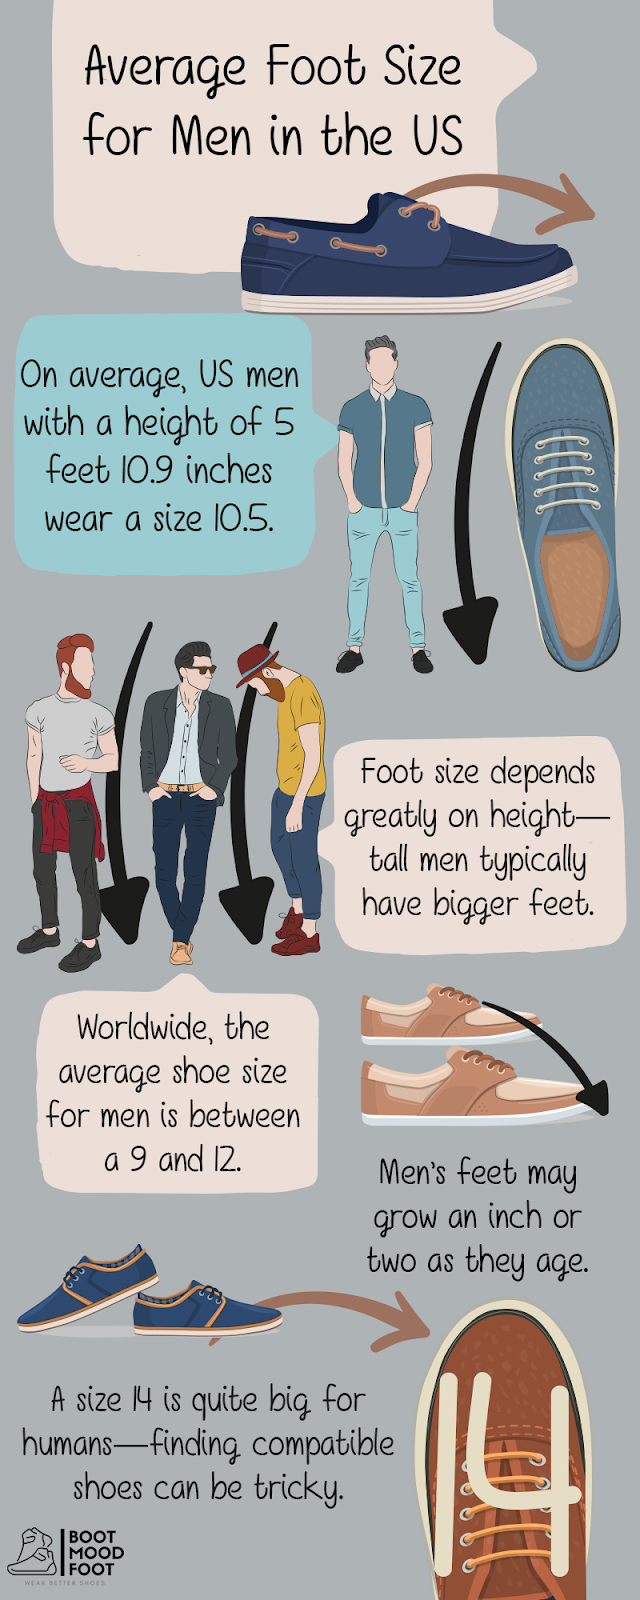 What Determines the Shoe Size for Men